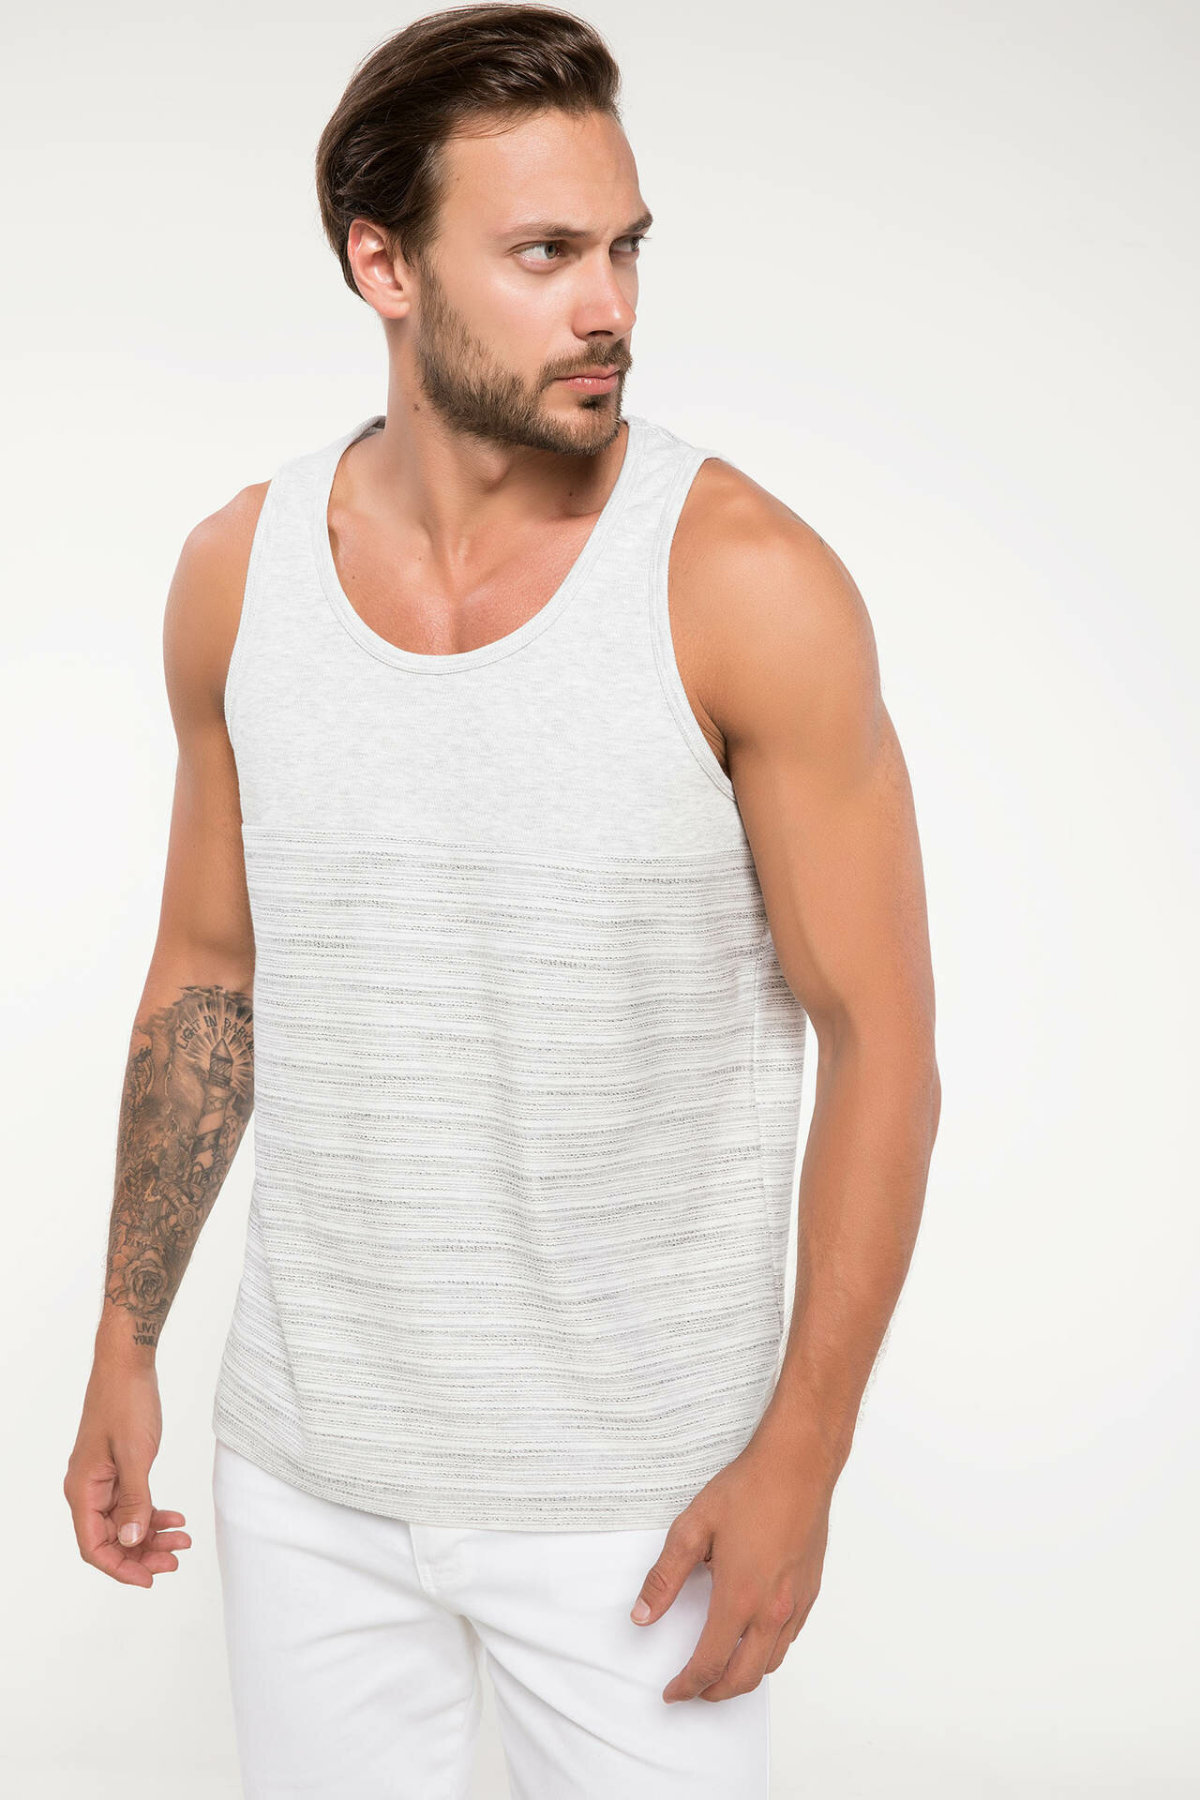 DeFacto Man Summer Casual White Tank Tops Knitted Sleeveless Cotton Breathable Loose Top Striped Tees - I8737AZ18SM